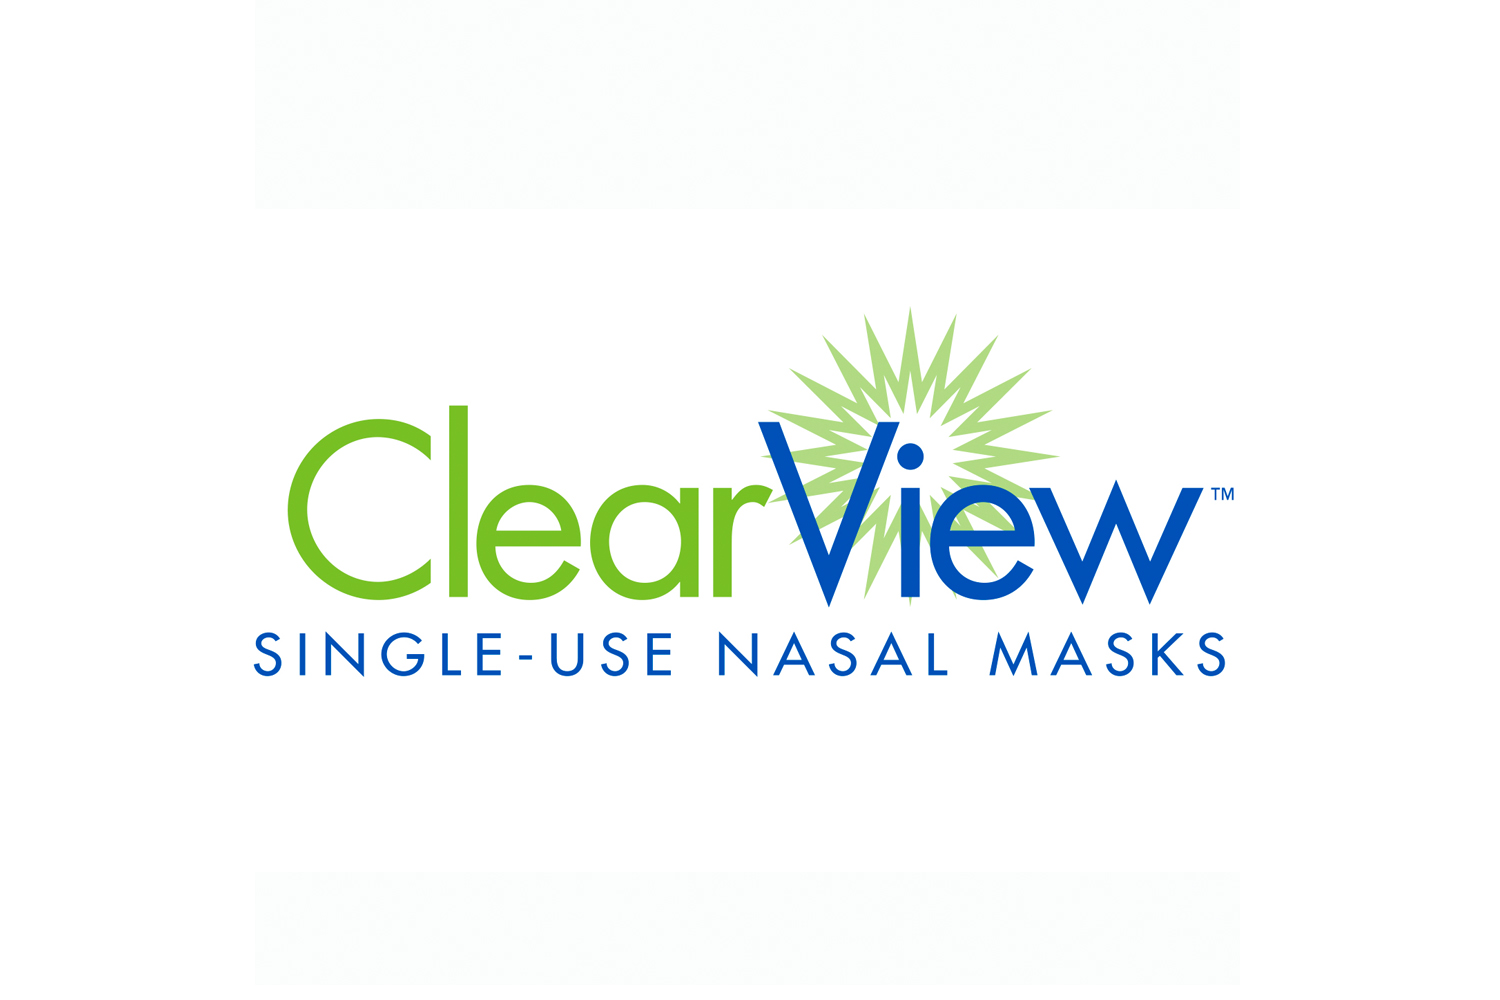 Logo design sample for ClearView Dental Masks